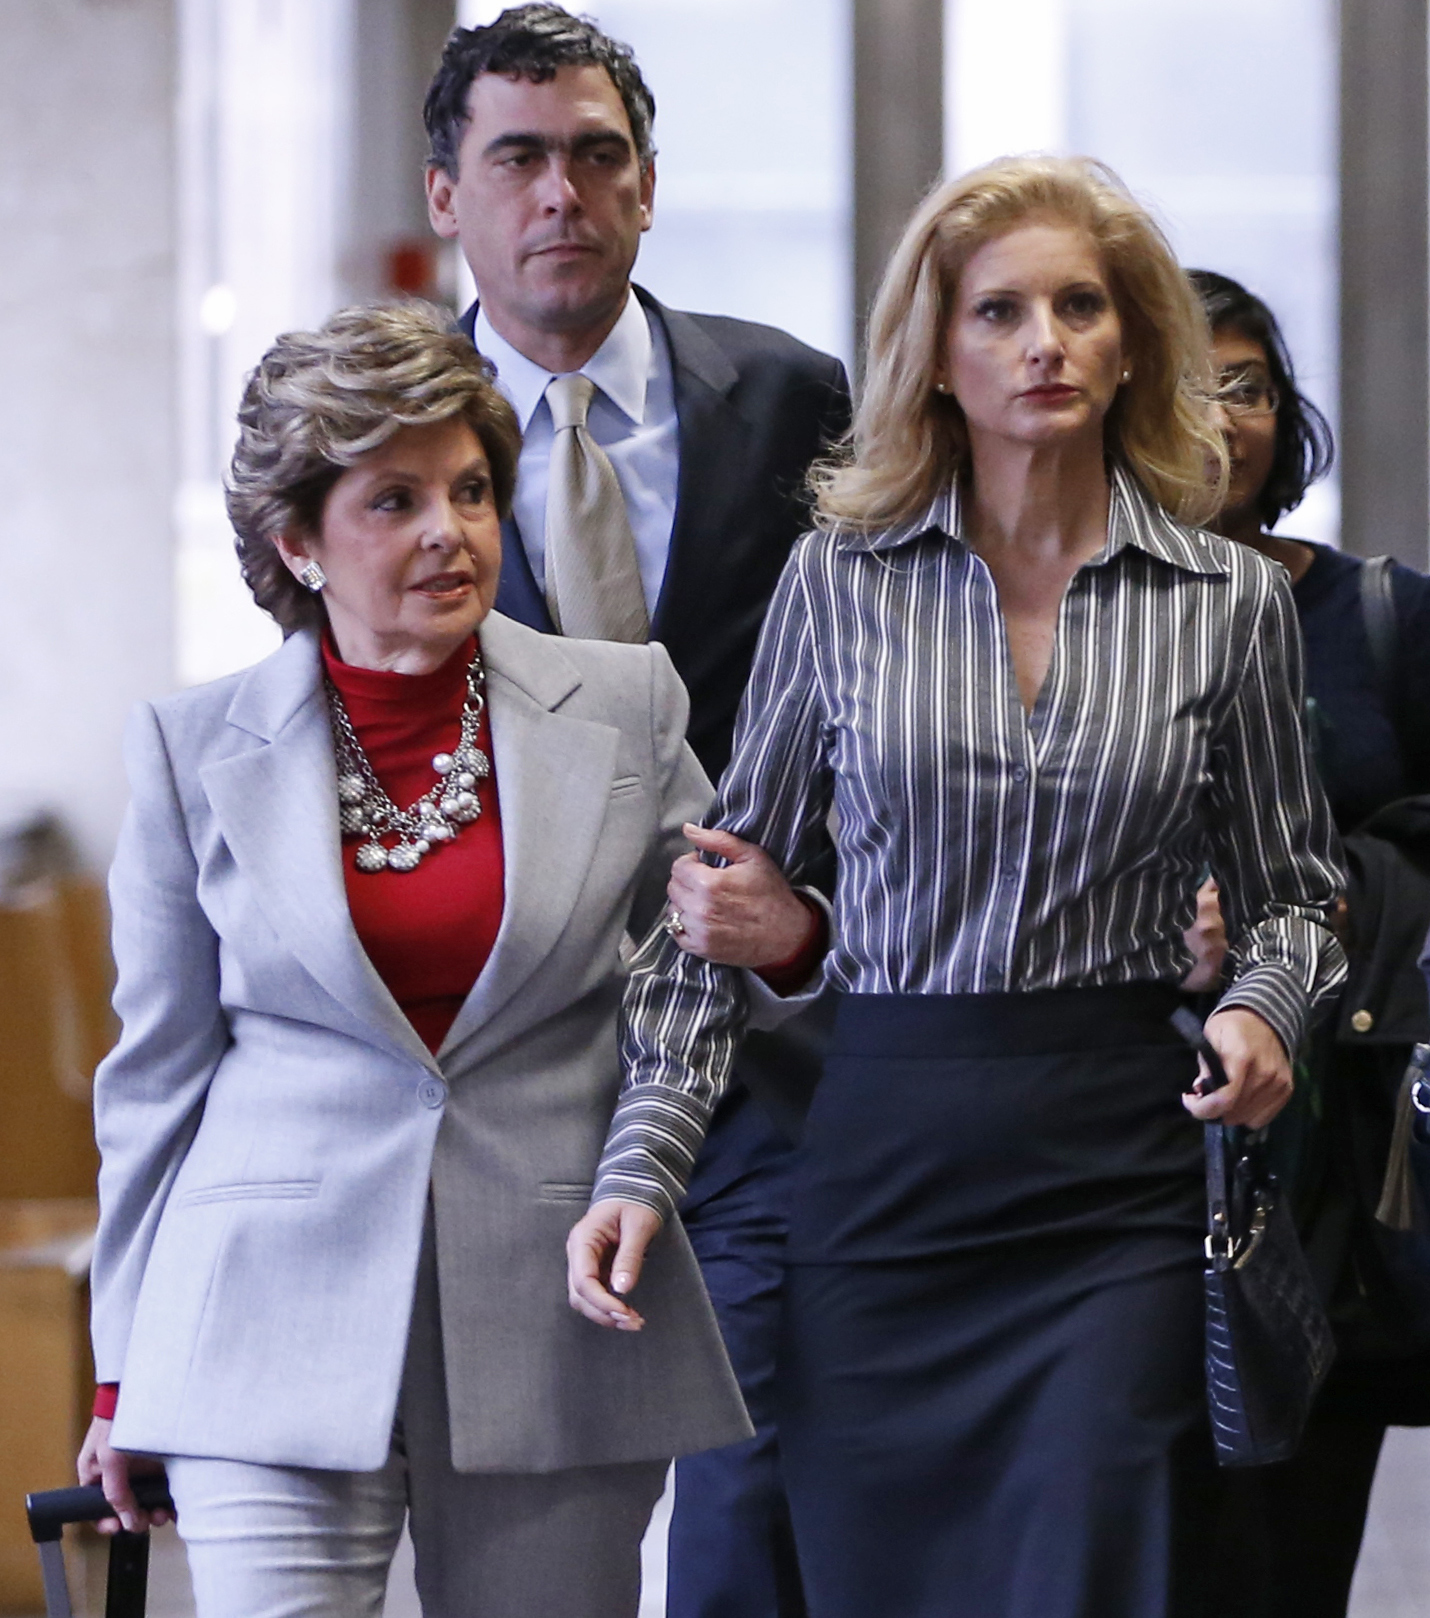 "Summer Zervos, right, a 2006 contestant on ""The Apprentice,"" enters Manhattan Supreme Court with attorney Gloria Allred, left, in New York, Tuesday, Dec. 5, 2017. Zervos and Allred are attending a hearing in which a Manhattan judge is weighing whether to toss out a defamation lawsuit against President Donald Trump by the former contestant on his reality TV show ""The Apprentice"" who accused him of unwanted sexual contact. (AP Photo/Kathy Willens)"